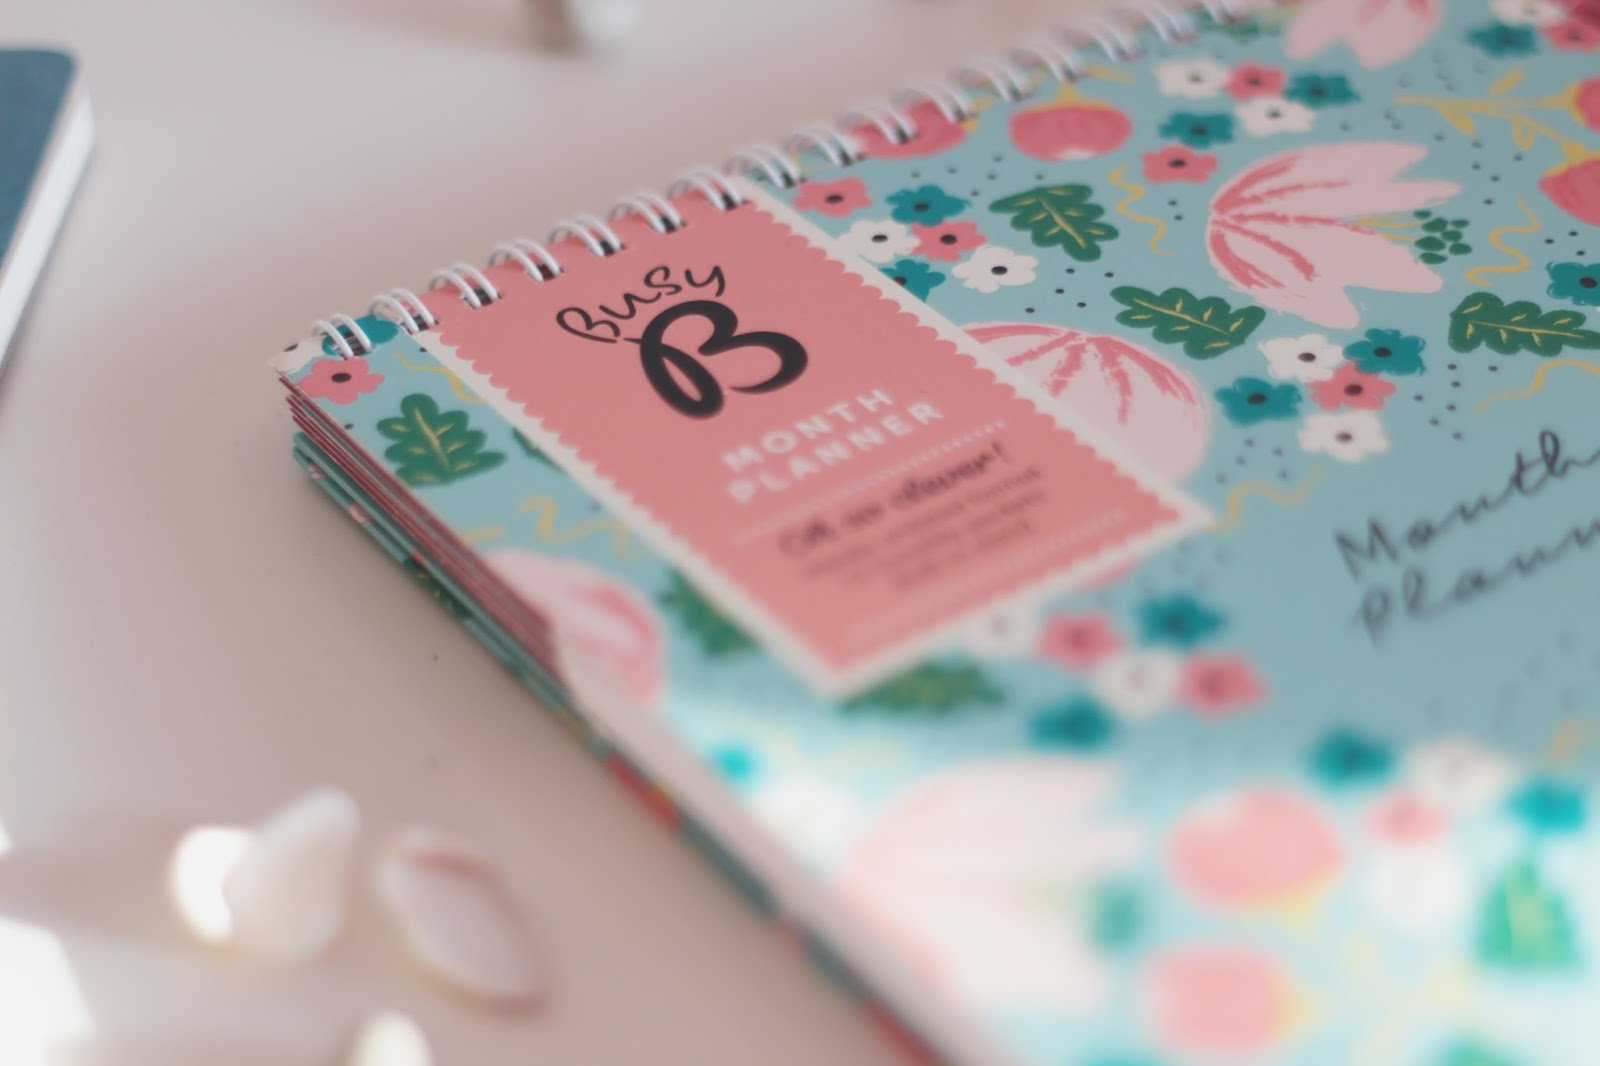 university stationery haul - busy b 12 month undated planner